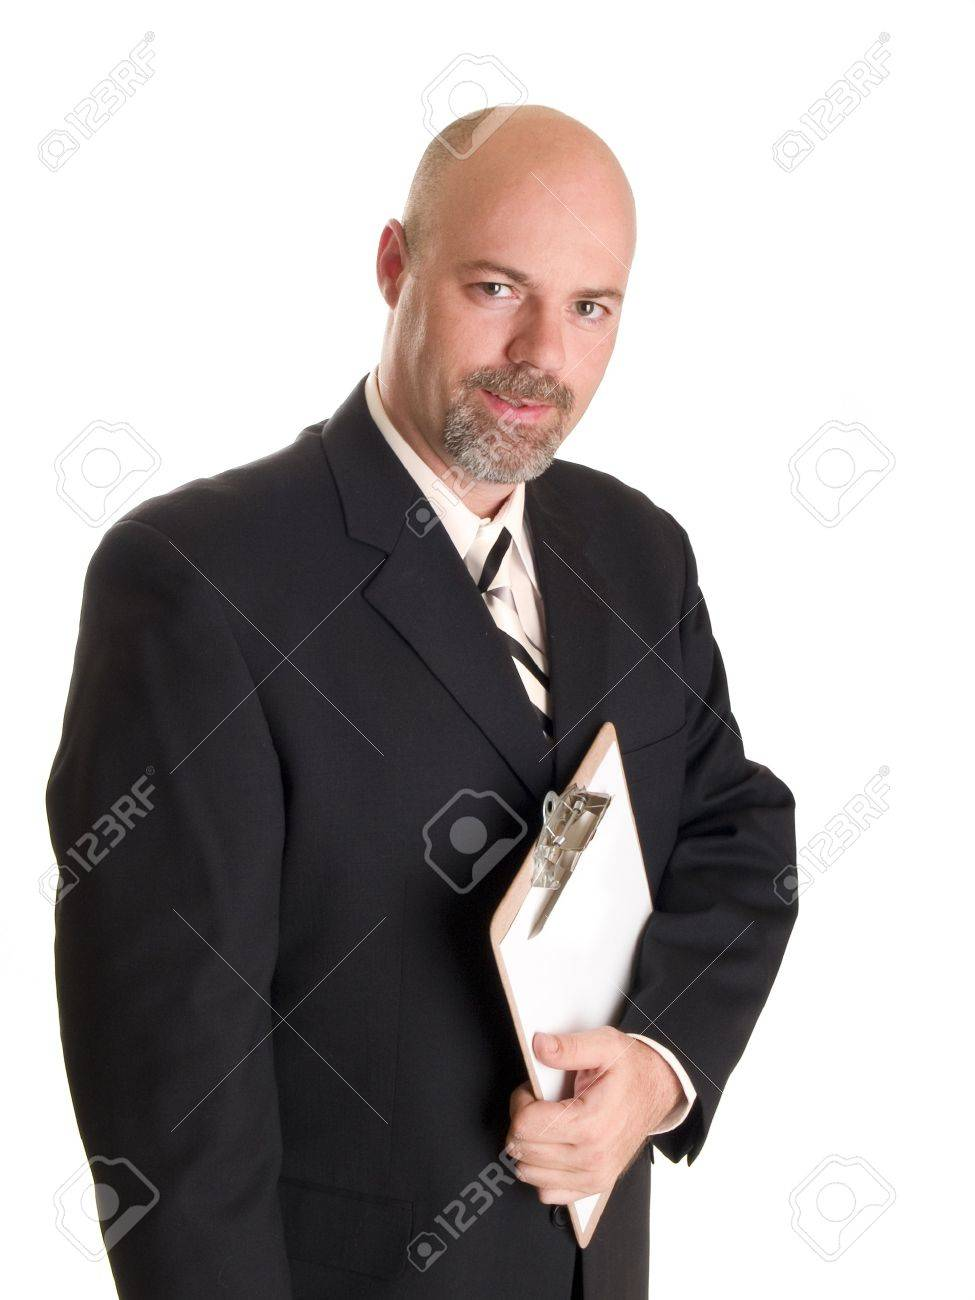 Stock photo of a well dressed businessman holding a clipboard, isolated on white. Stock Photo - 8081029